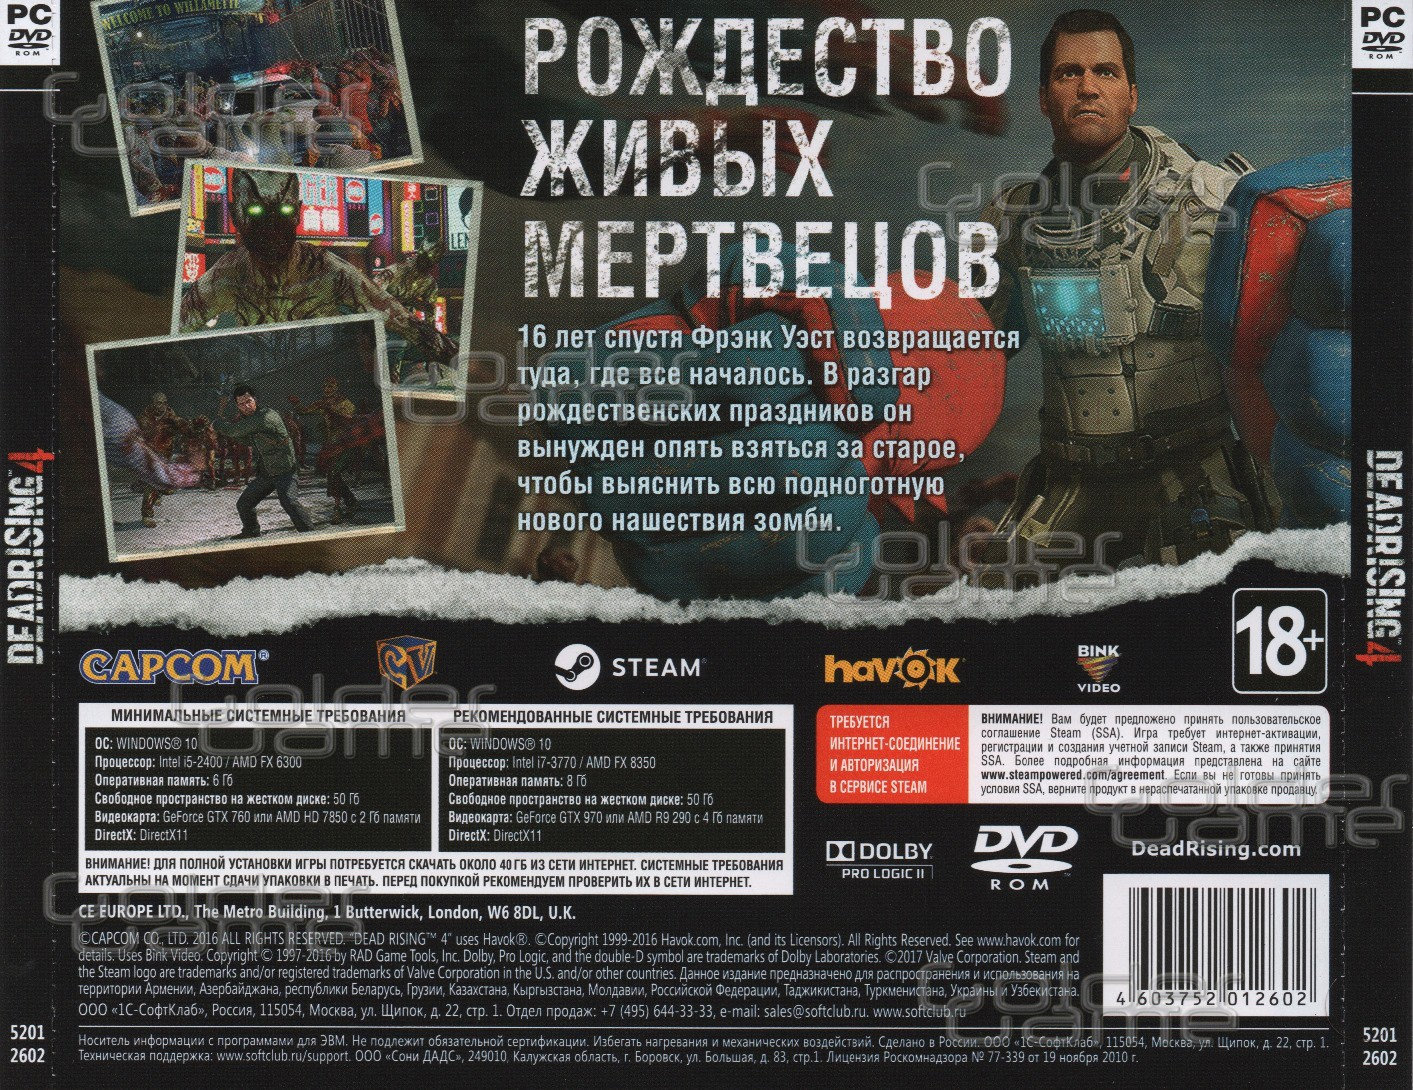 Dead Rising 4 (Photo CD-Key) STEAM